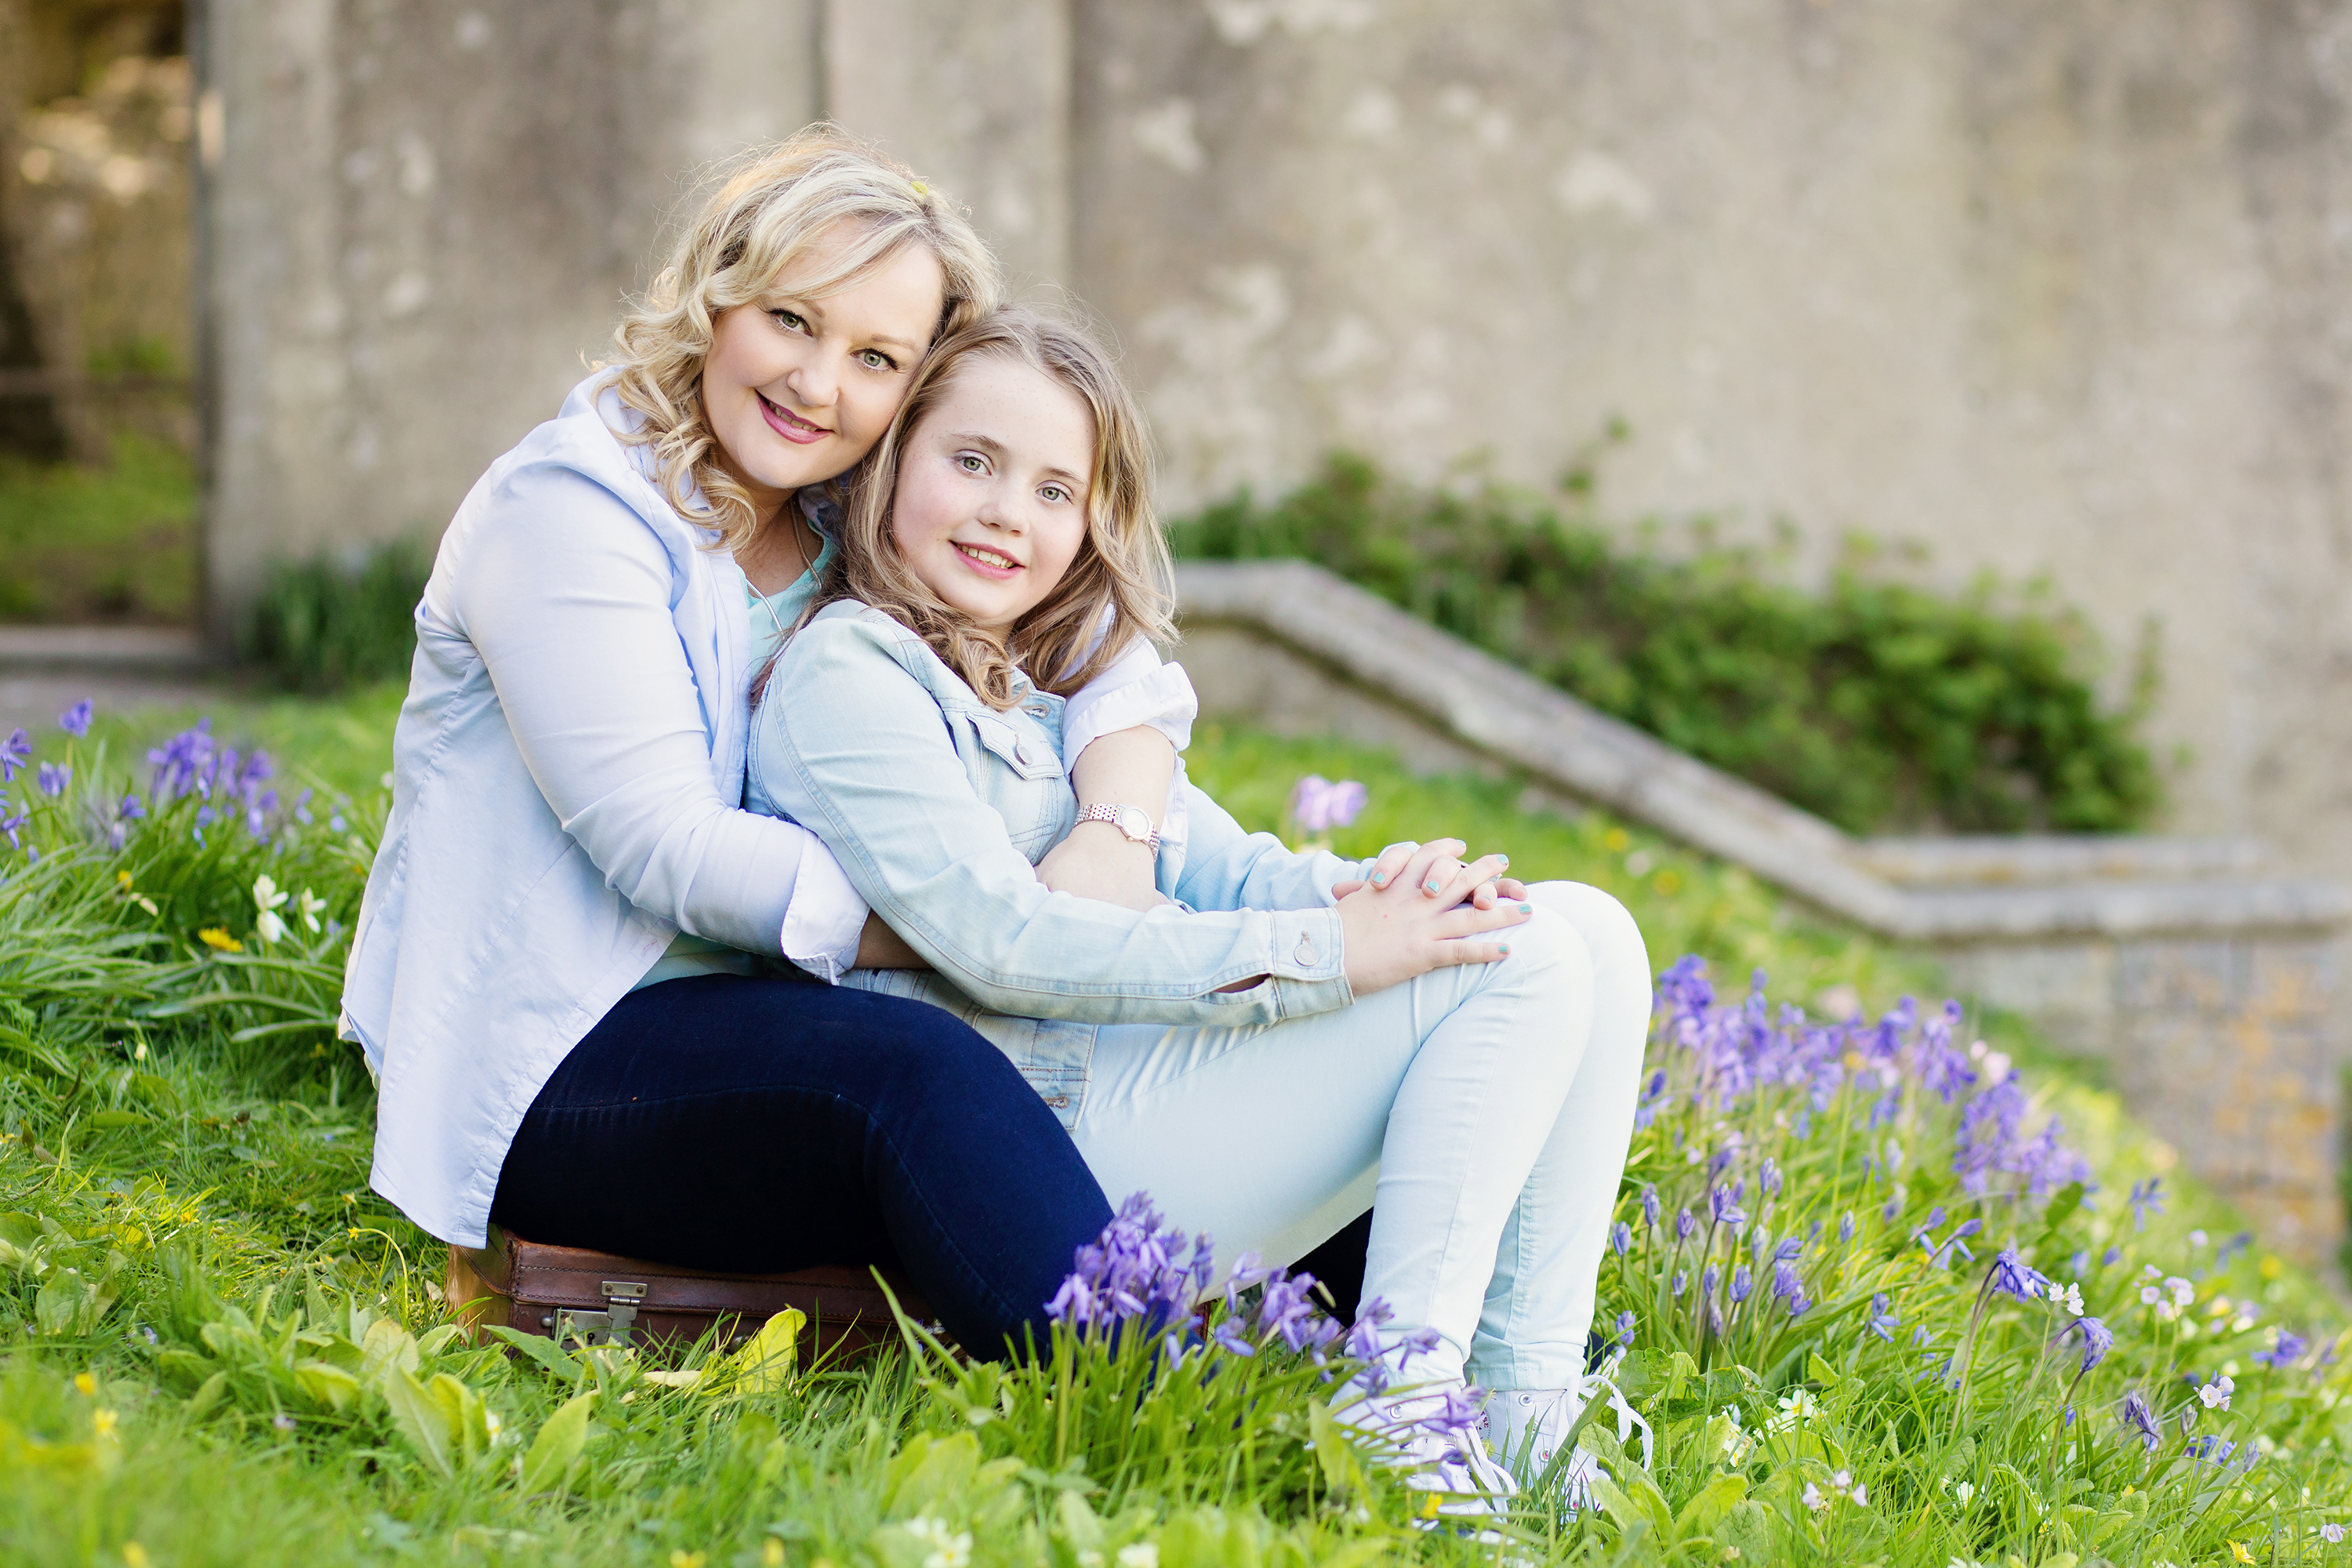 Mum and daughter Dunraven gardens photo shoot